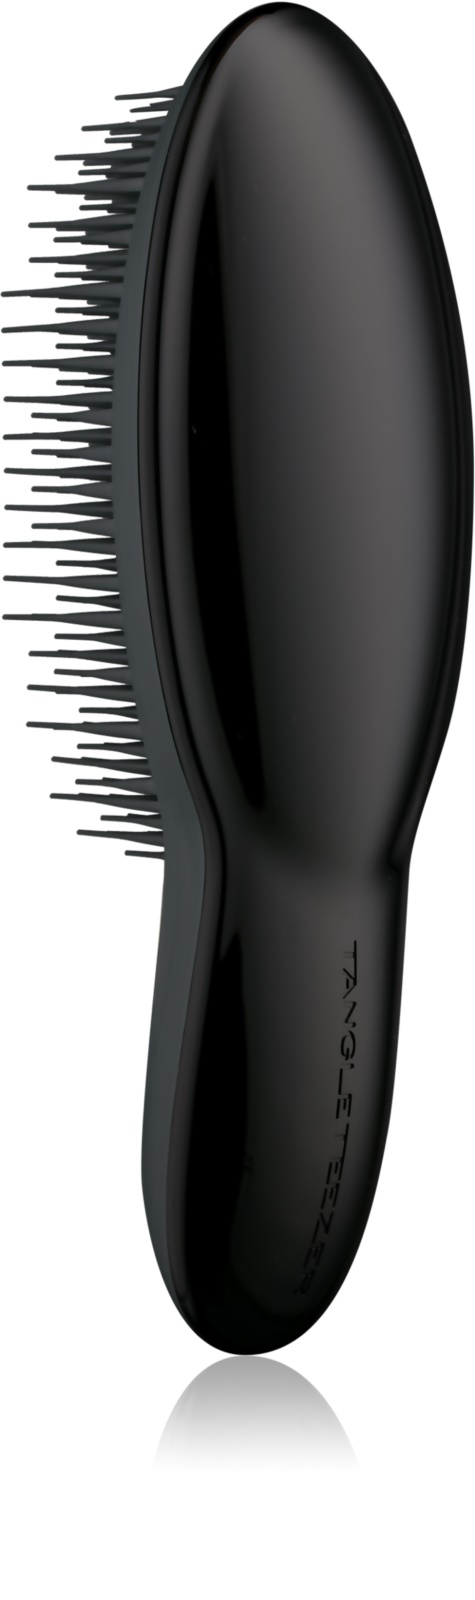 Tangle Teezer The Ultimate hajkefe